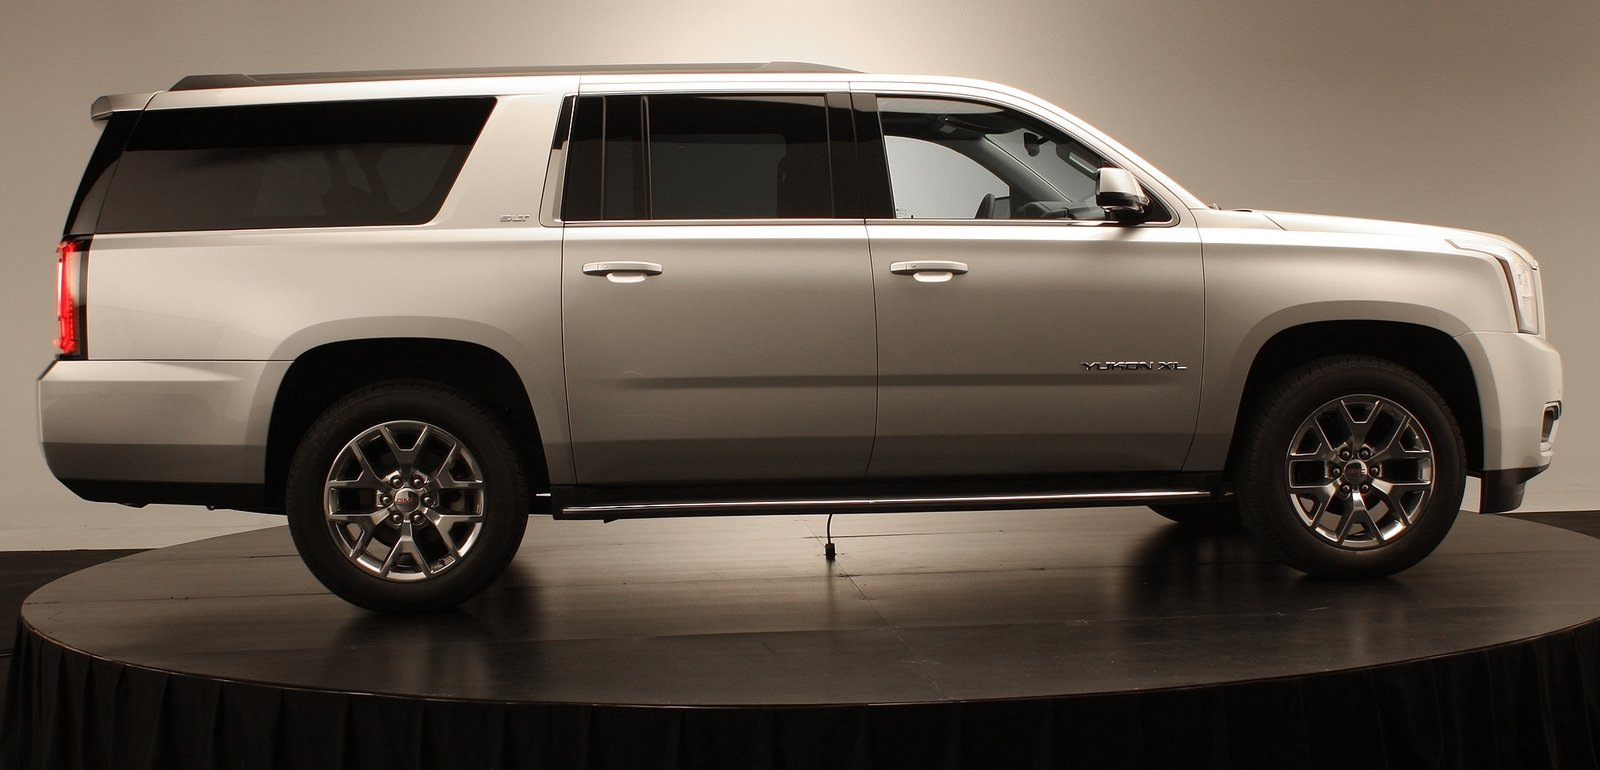 2015 gmc yukon xl picture 527840 car review top speed. Black Bedroom Furniture Sets. Home Design Ideas